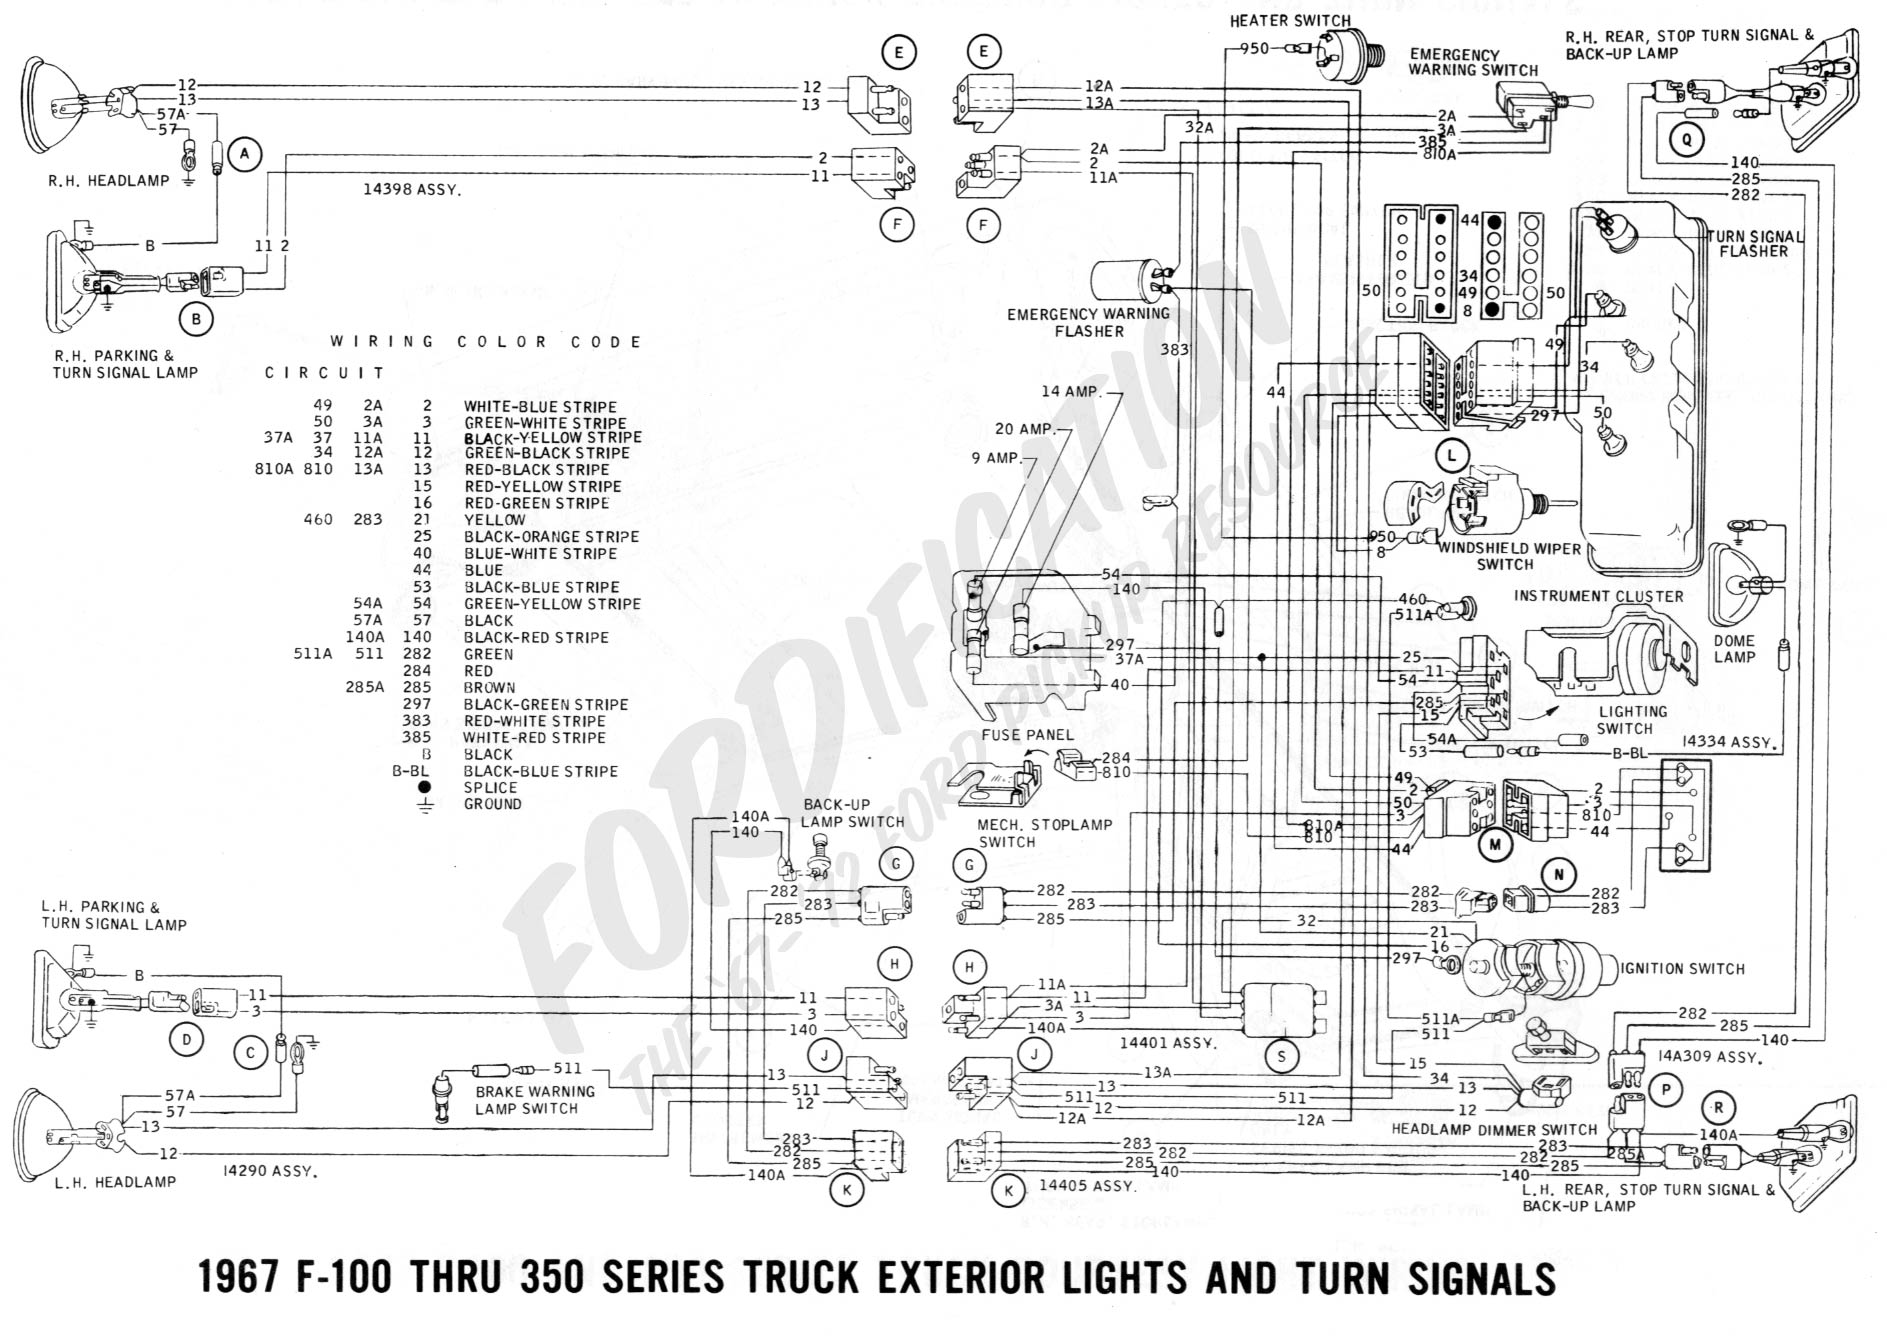 5wlq0 Ford F 250 1973 Ford F 250 3 4 Ton 5 8 Liter Wiring Diagram also 1968 Mustang Wiring Diagram Vacuum Schematics furthermore Cata Remontage Turn Signal as well Turnlights1 as well Wiring. on 1965 chevy 2 nova turn signal wiring diagram